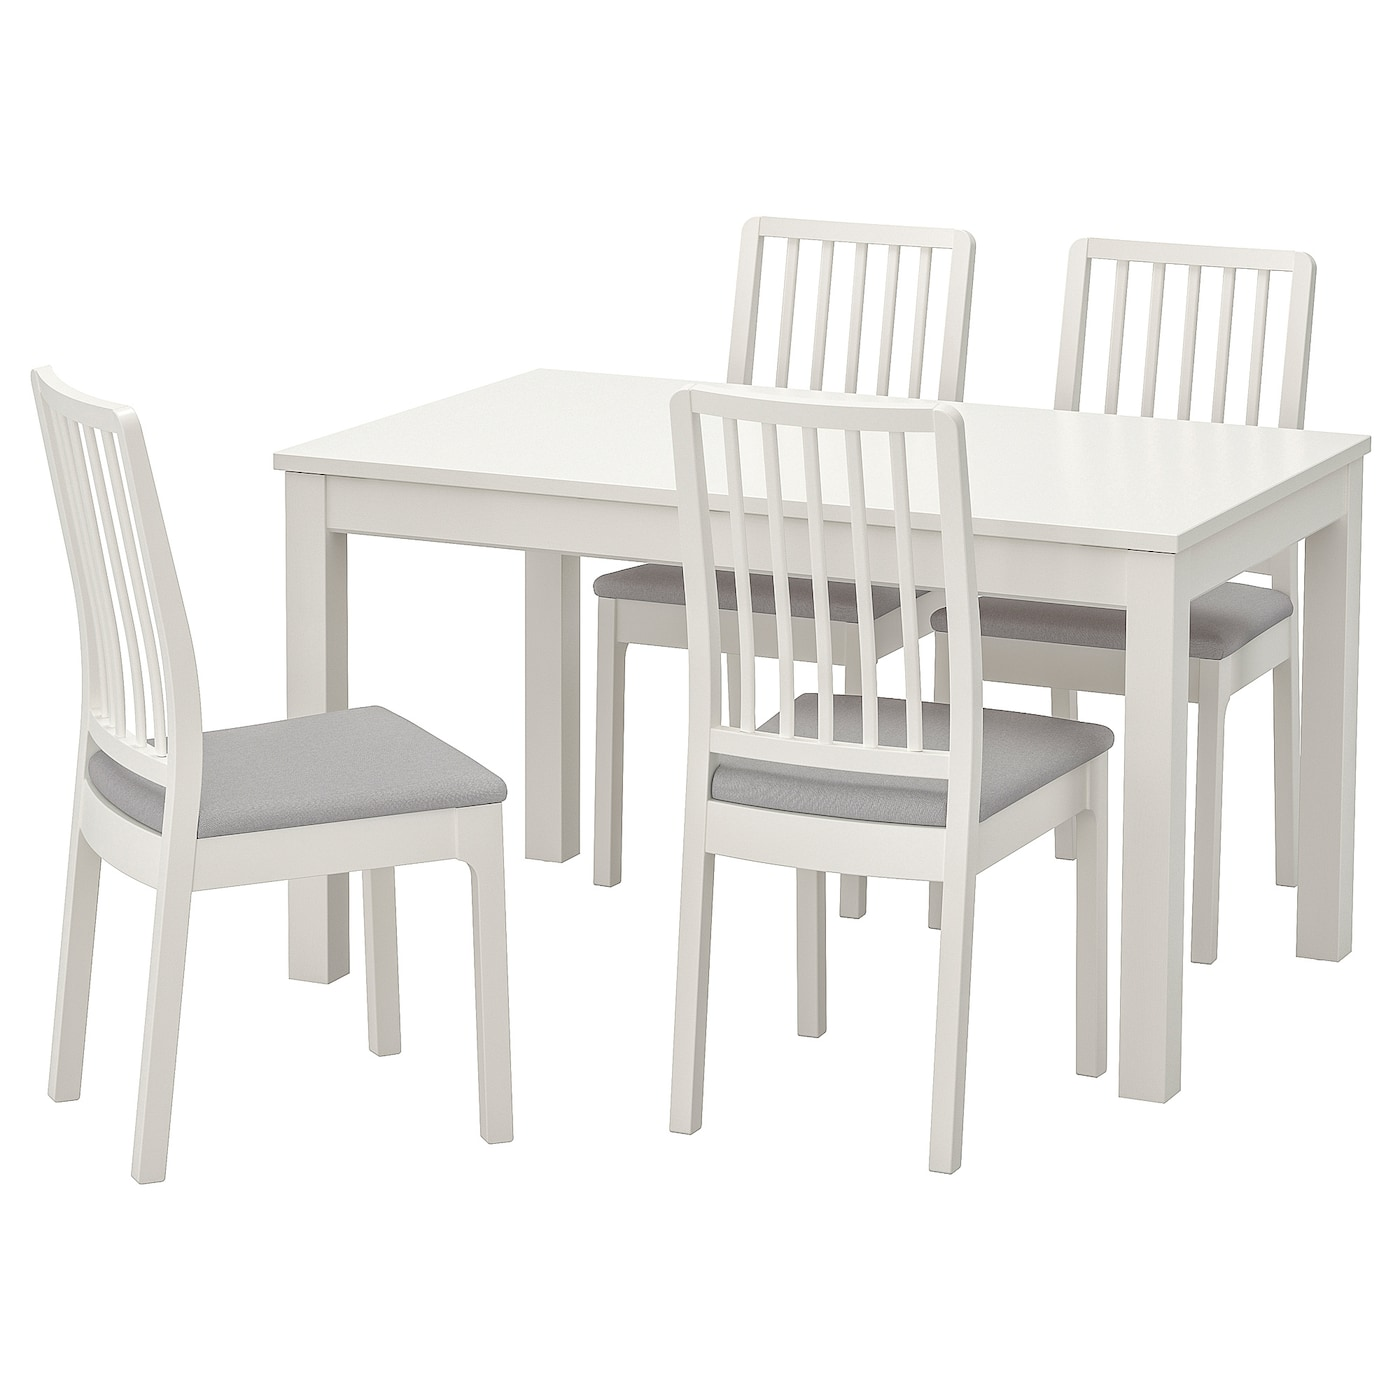 Ikea Dining Table and 4 Chairs   in